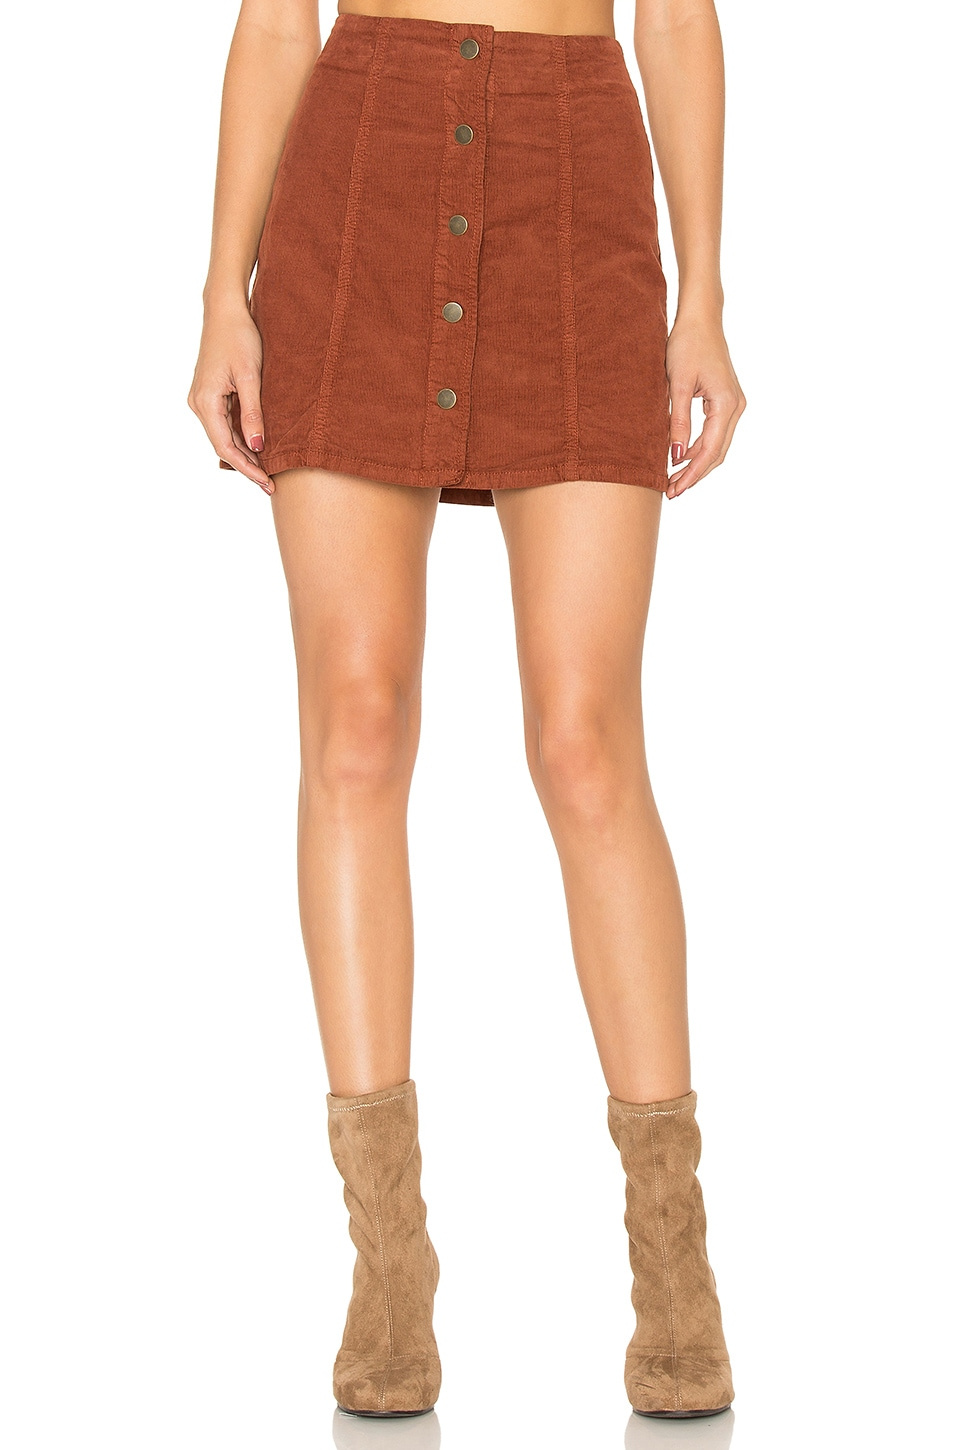 Joie Tilda Skirt in Rust